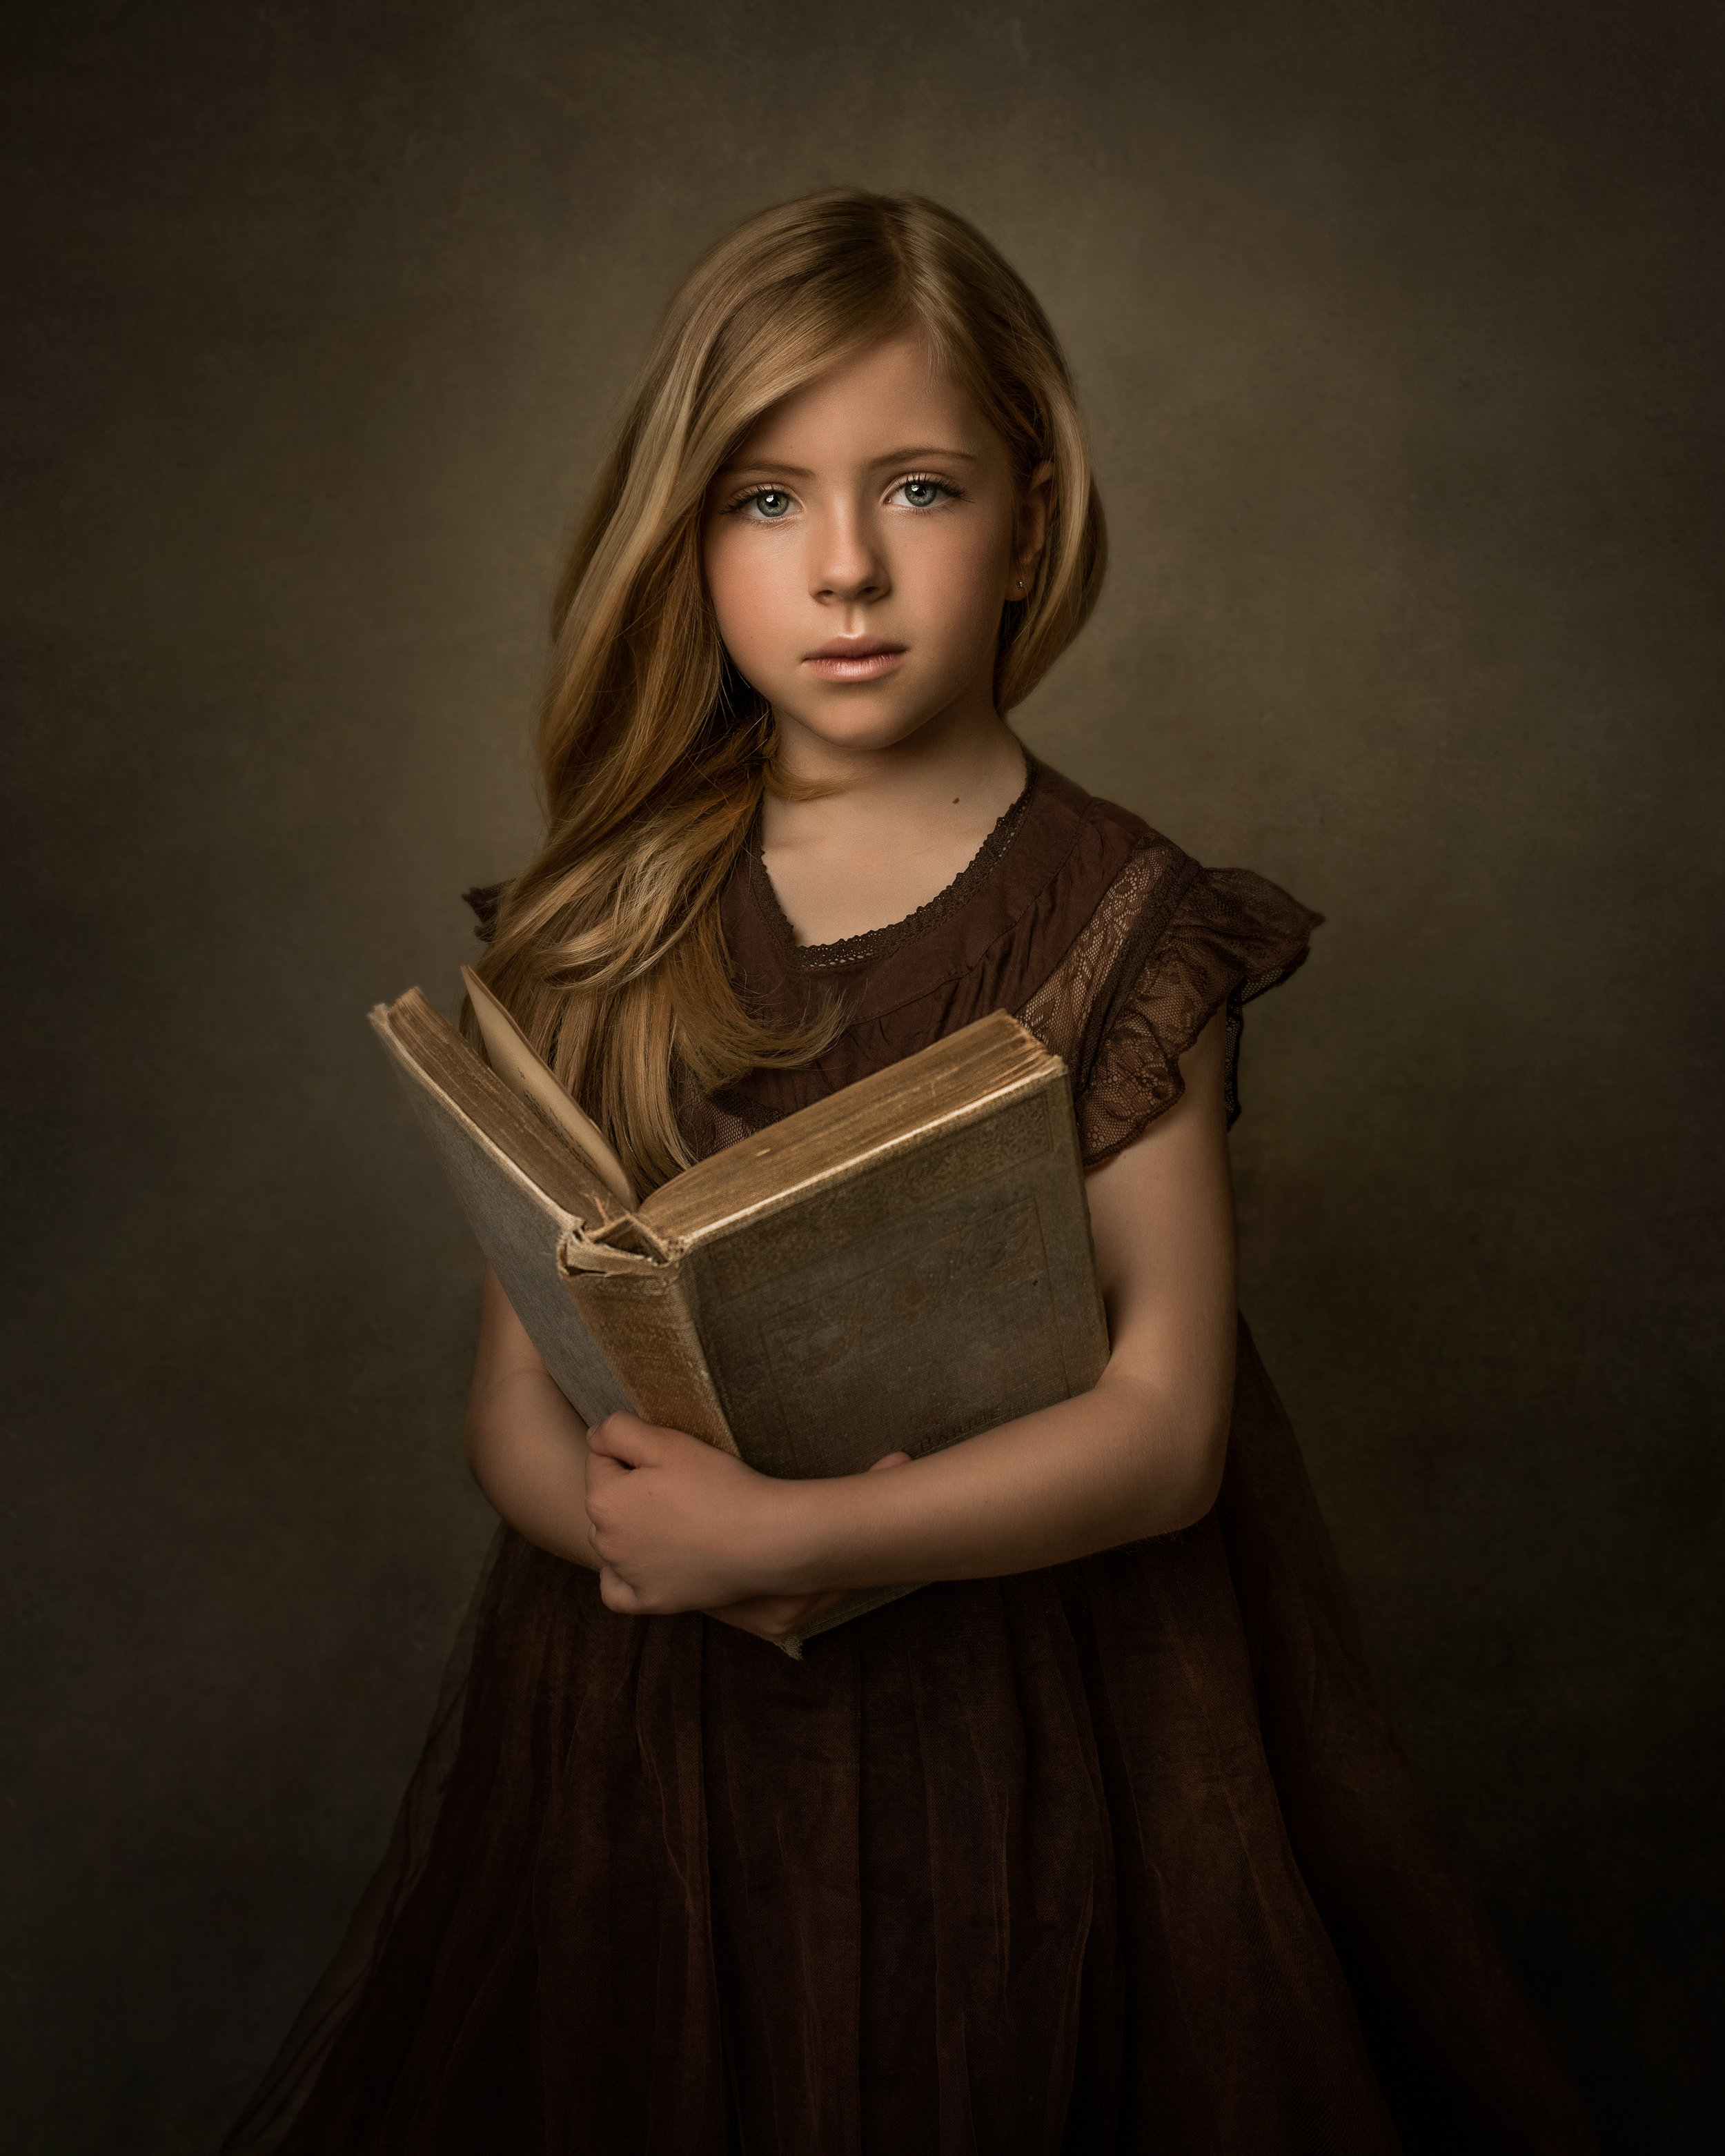 barbara-macferrin-photography-girl-vintage-fine-art-book-rembrandt-brown-dress-boulder-colorado-SM-sm.jpg